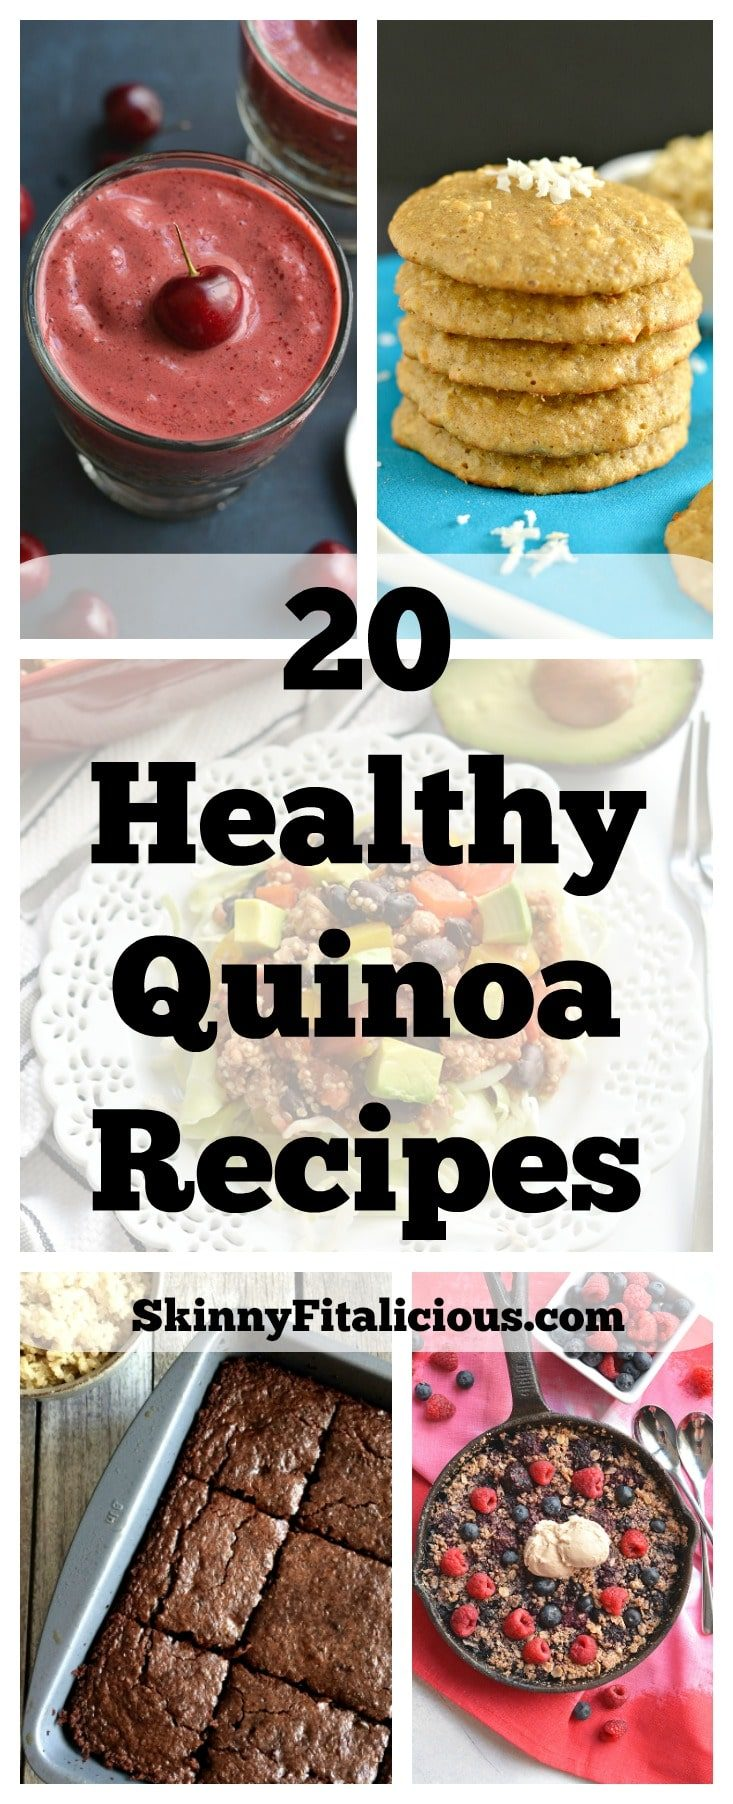 From sweet to savory, these 20 Healthy Quinoa Recipes will show you how delicious and EASY quinoa can be to add to your meals and snacks.